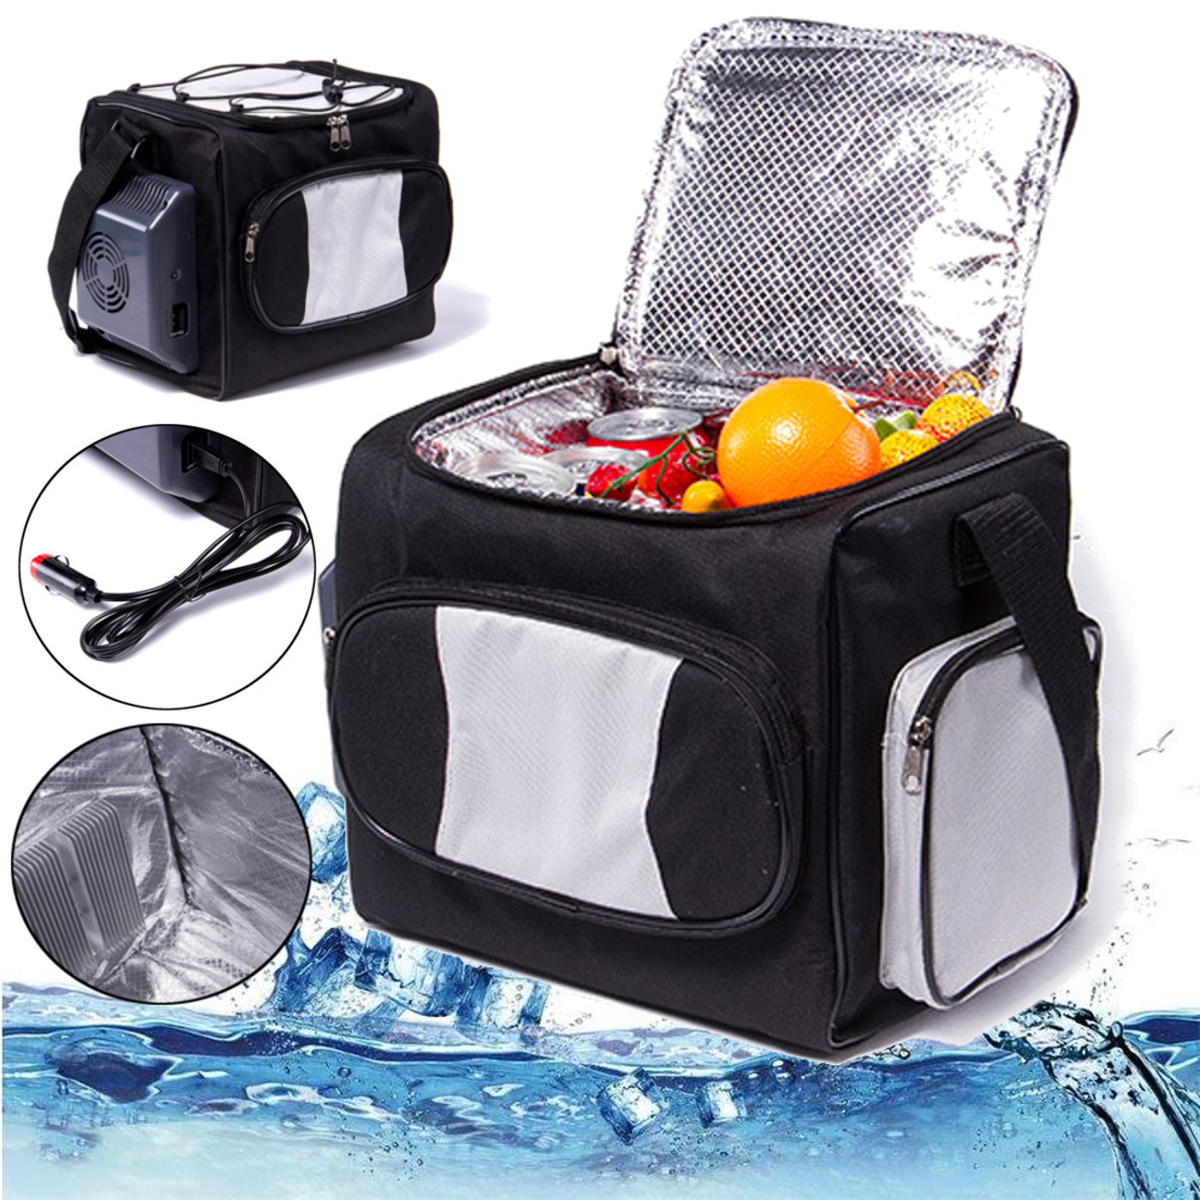 DC 12V Mini Fridge 12L Auto Car Portable Freezer Centigrade Bag Home Cooler Refrigerator